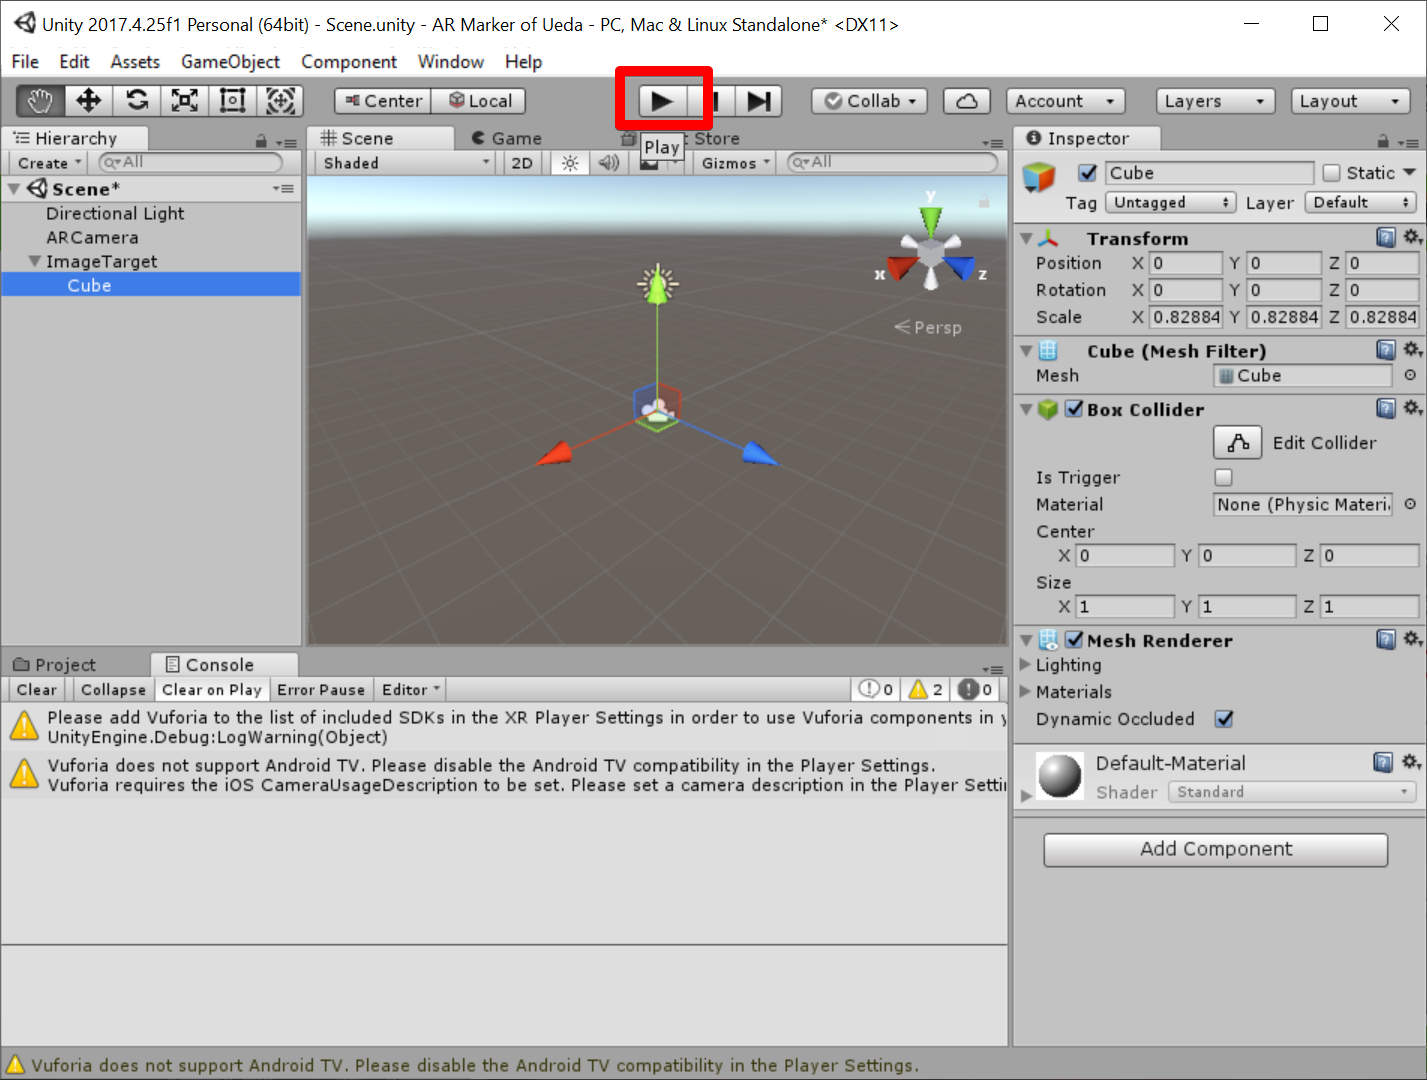 Unity 2017.4.25f1 Personal (64bit) - Scene.unity - AR Marker of Ueda - PC, Mac & Linux Standalone_ _DX11_ 2019-07-05 07.54.05.png